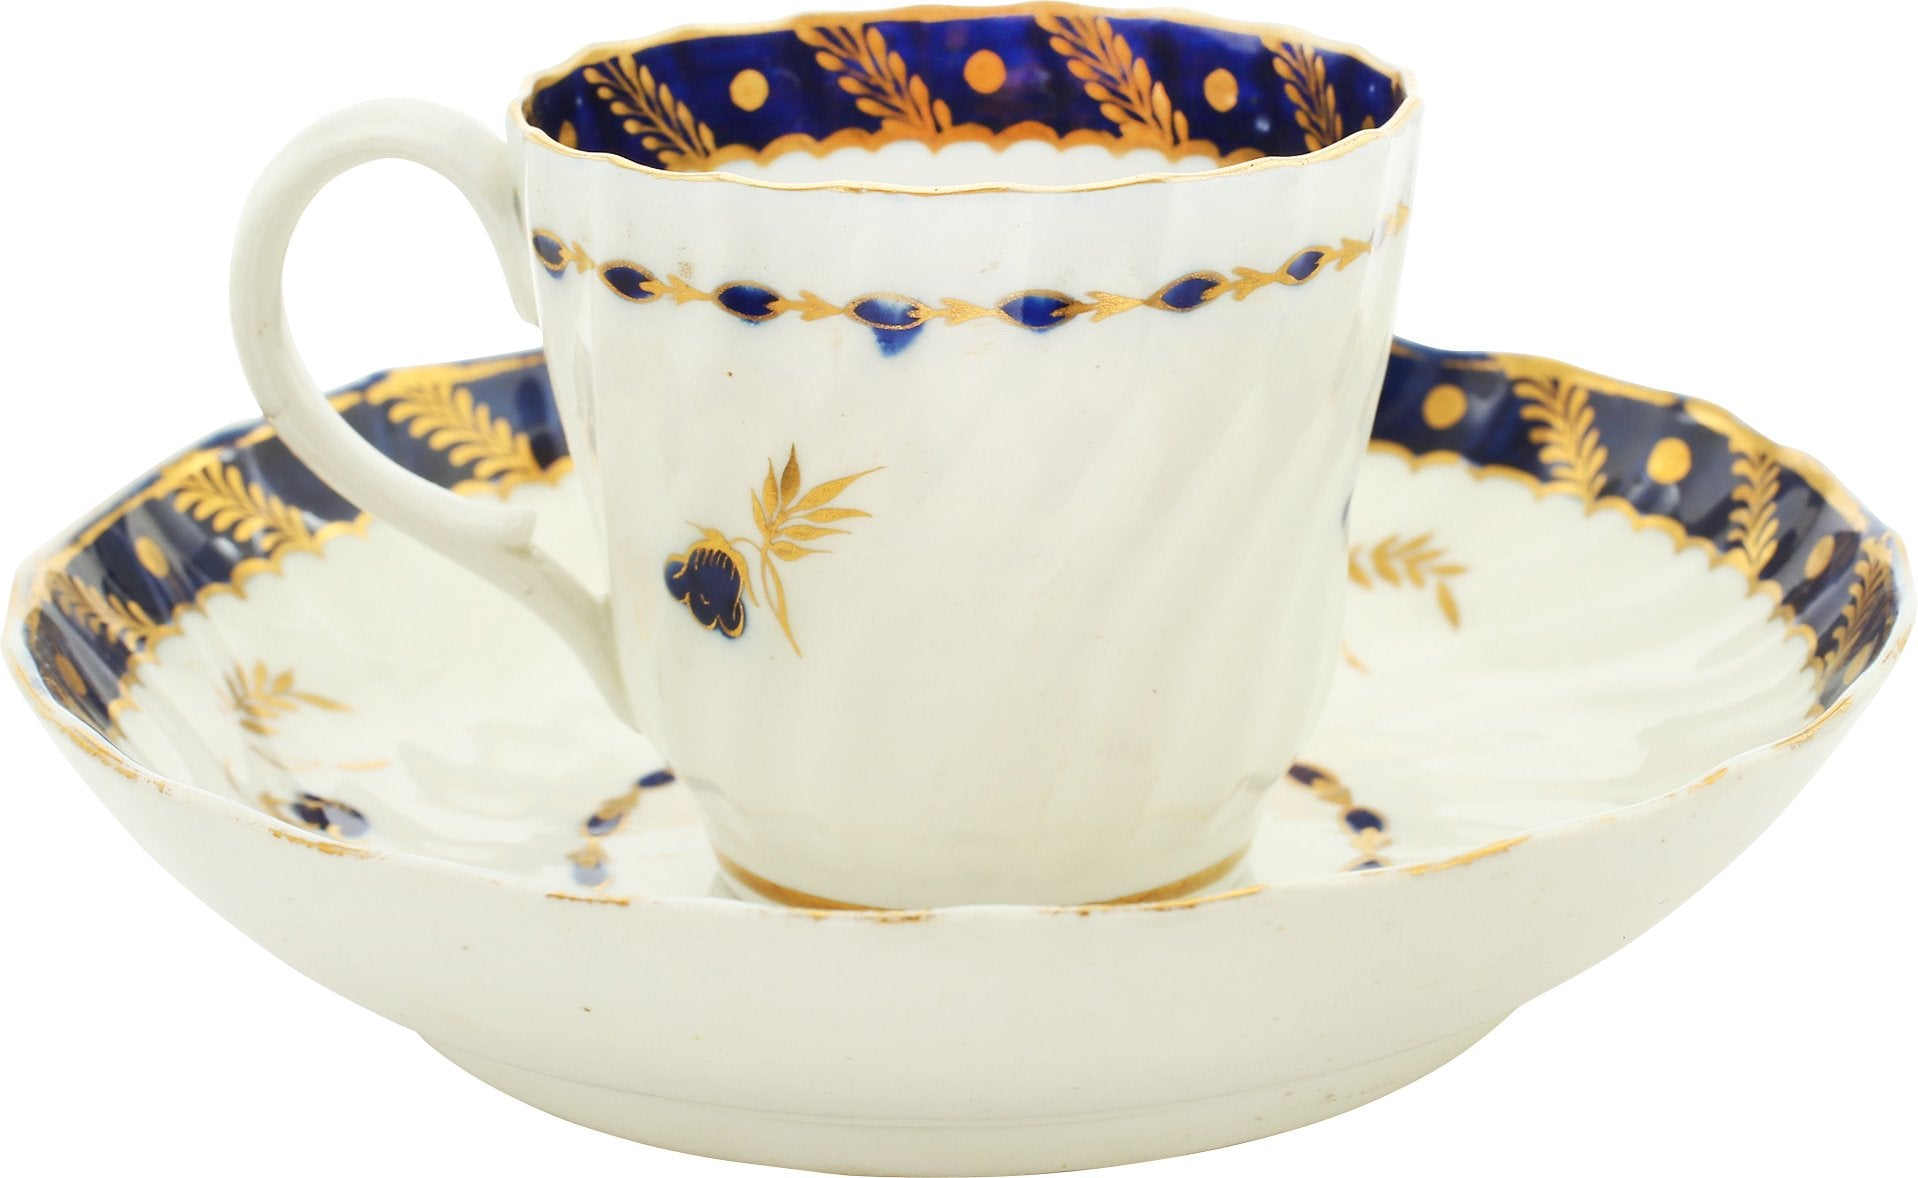 FIRST PERIOD WORCESTER TEA CUP AND SAUCER